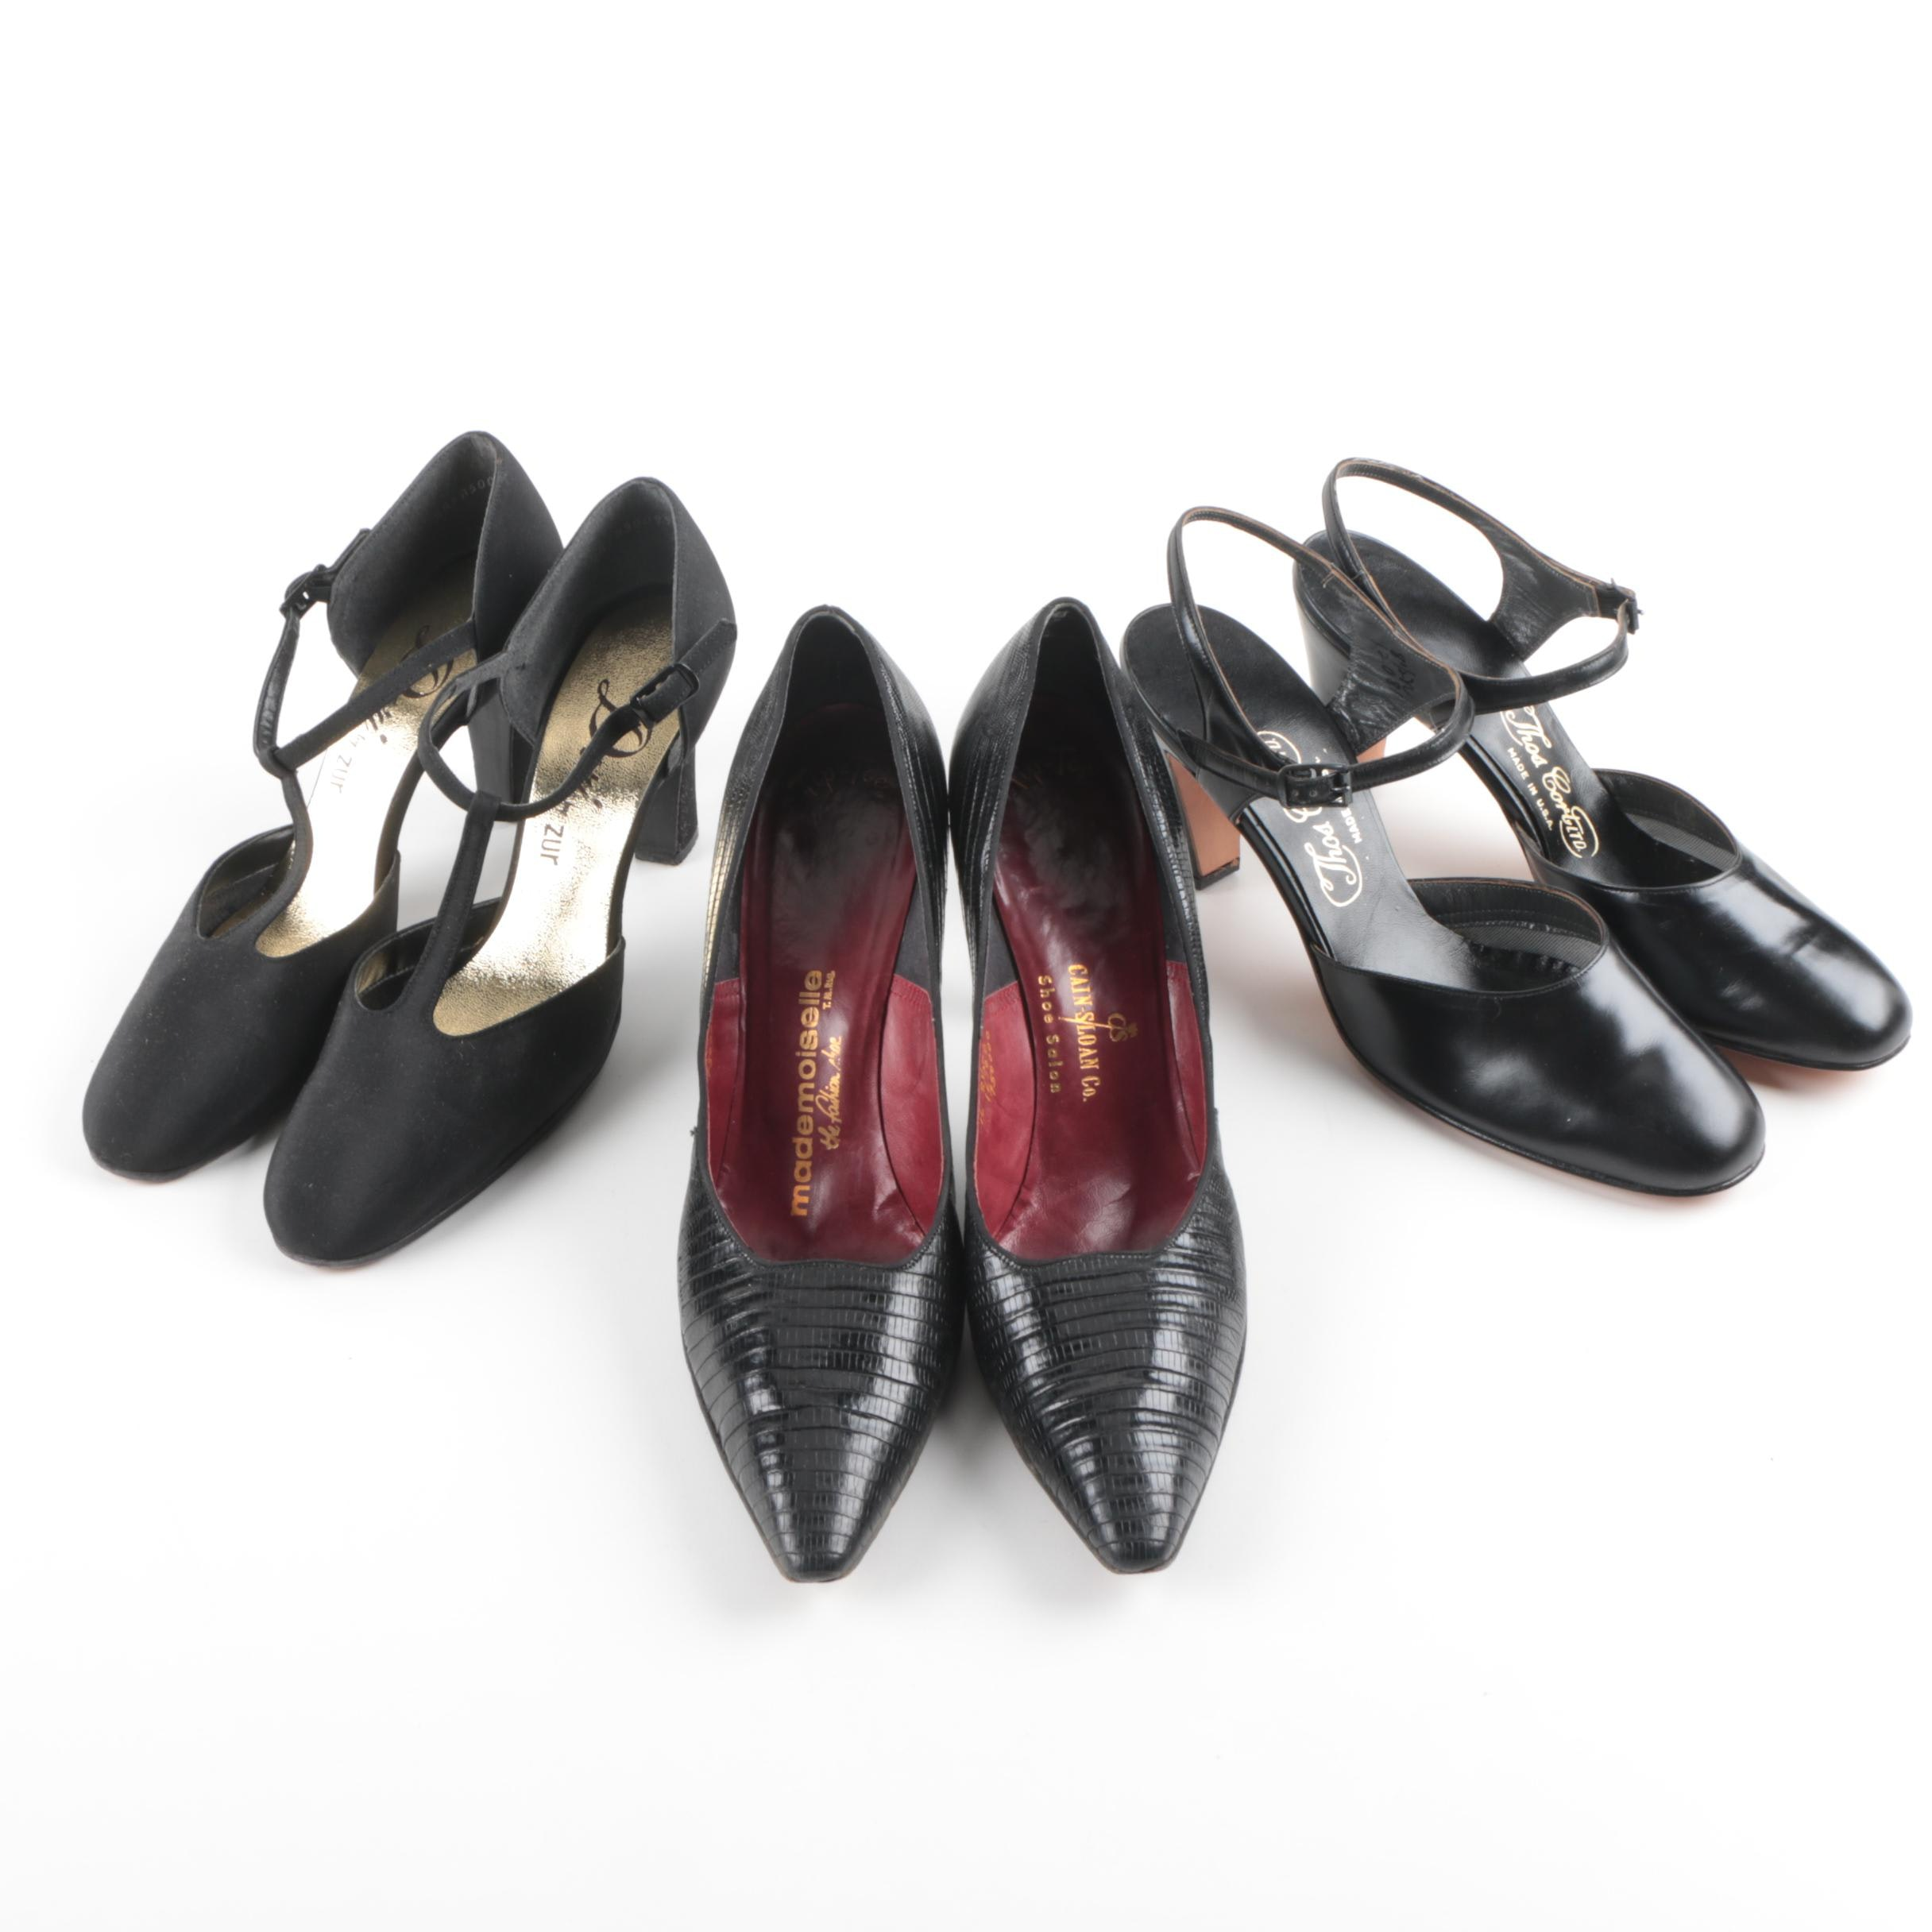 Women's Vintage Leather and Reptile Skin Shoes